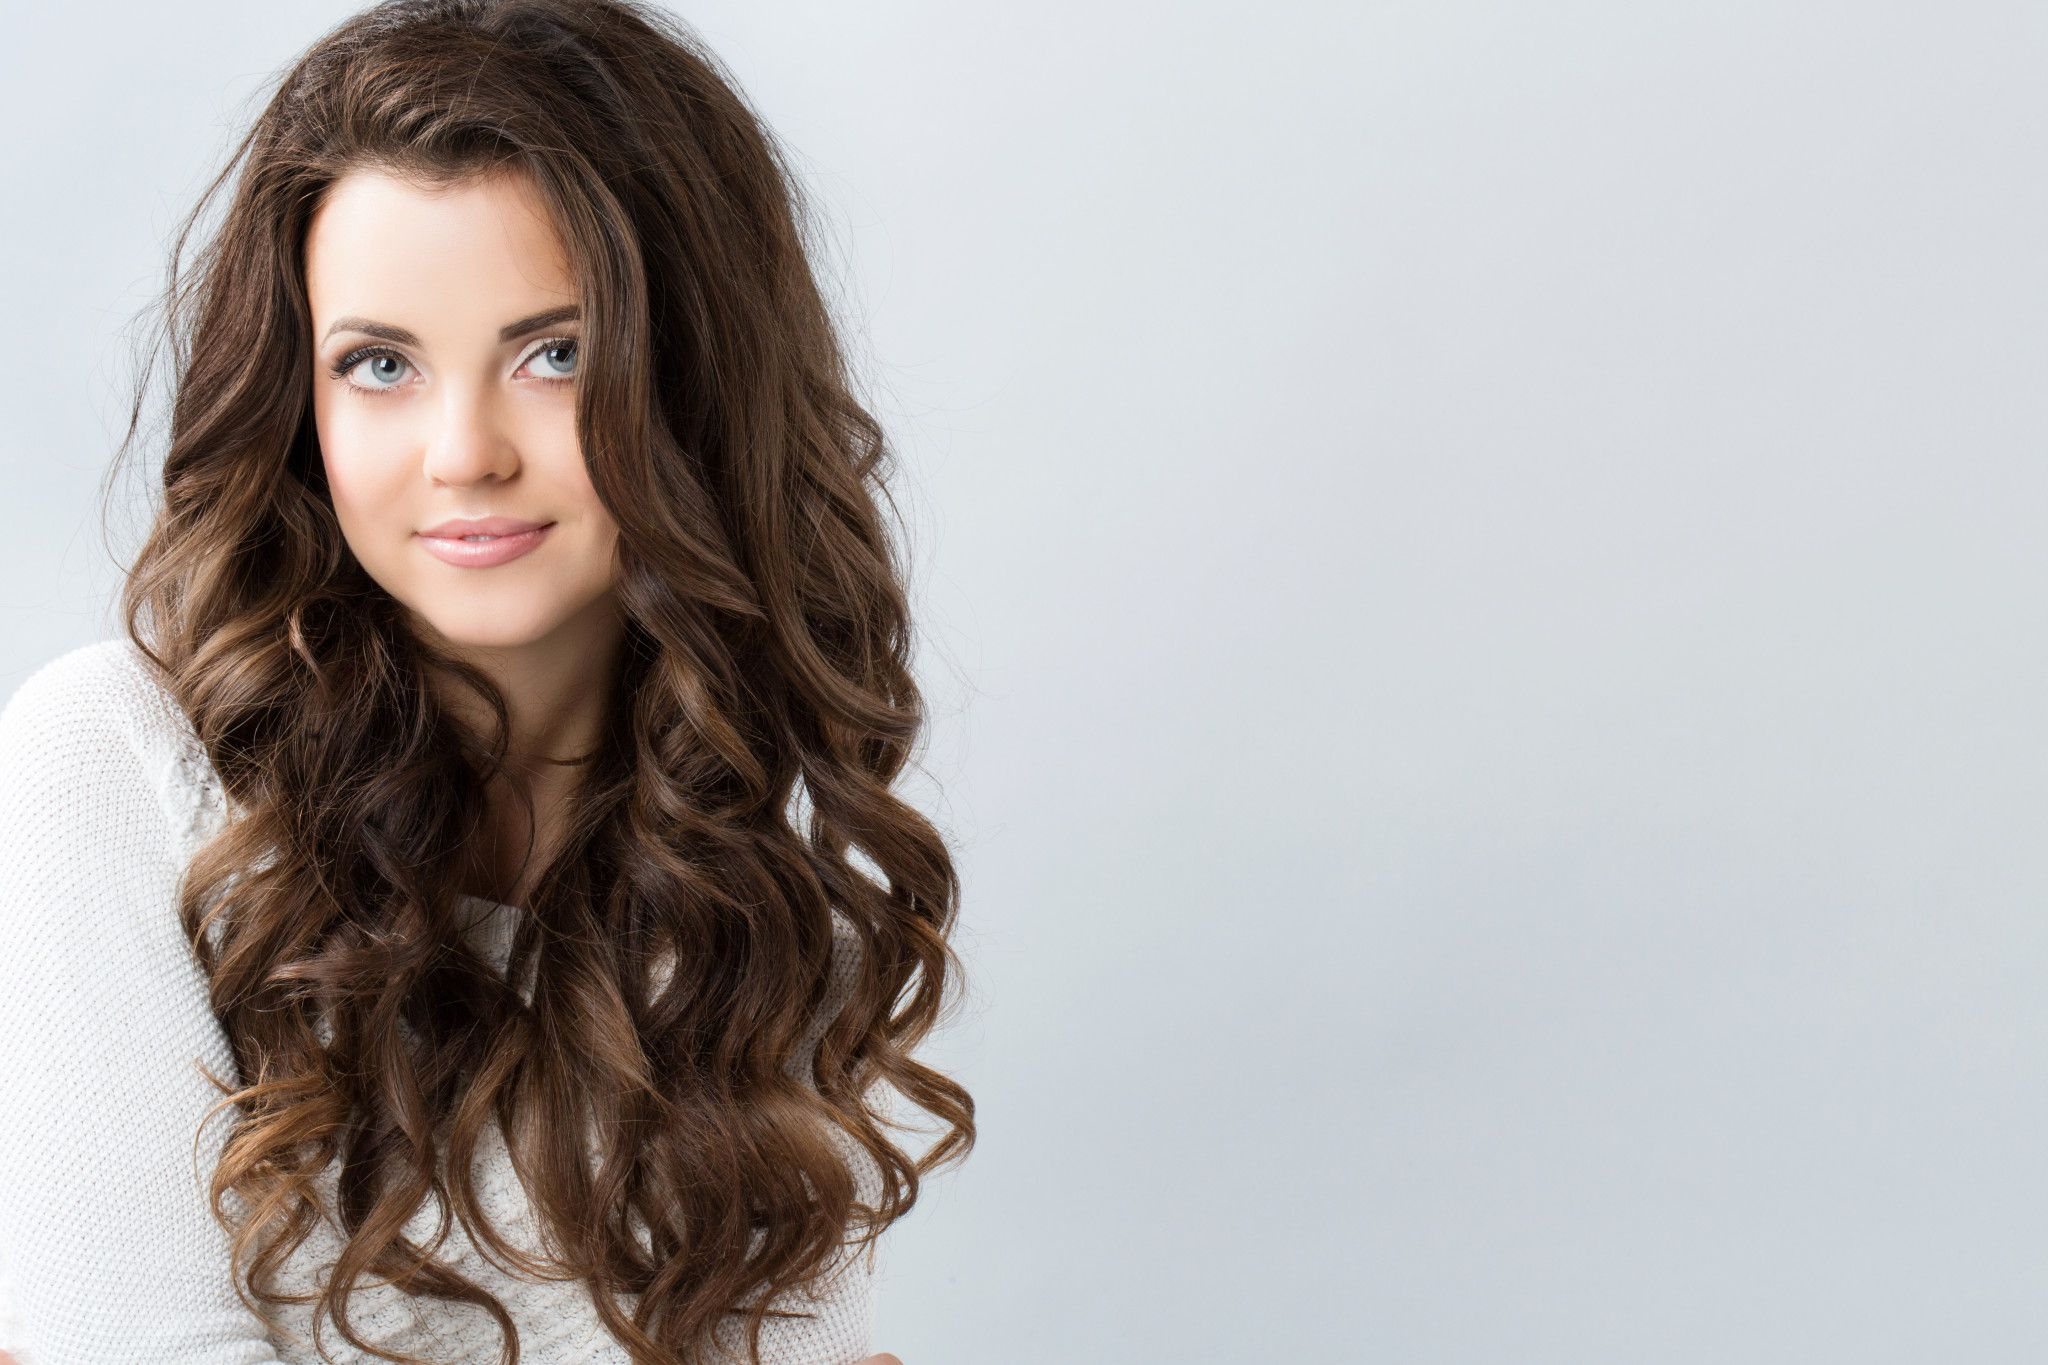 Simple hairstyles for long hair a fashion clothing jewelry